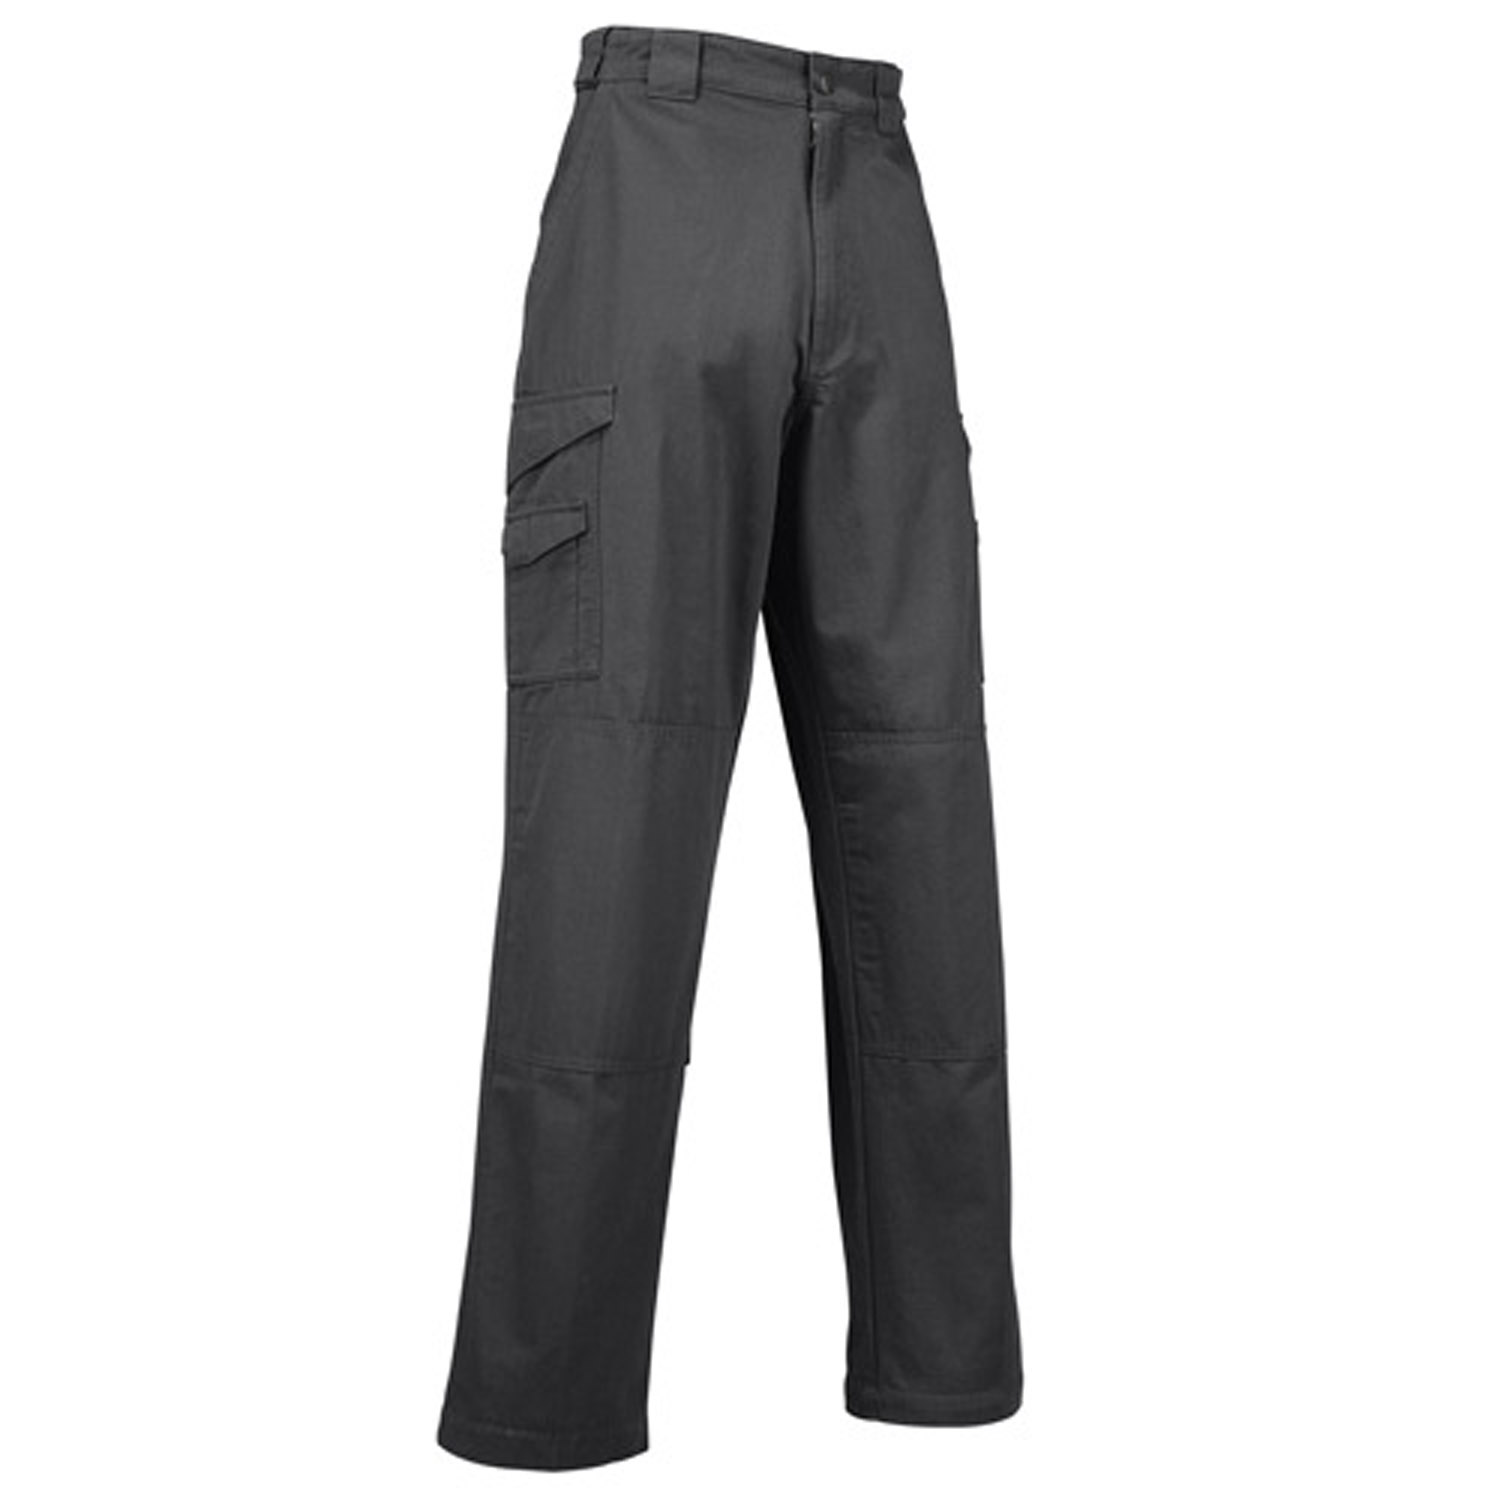 Tru-Spec 24-7 Canvas Pants